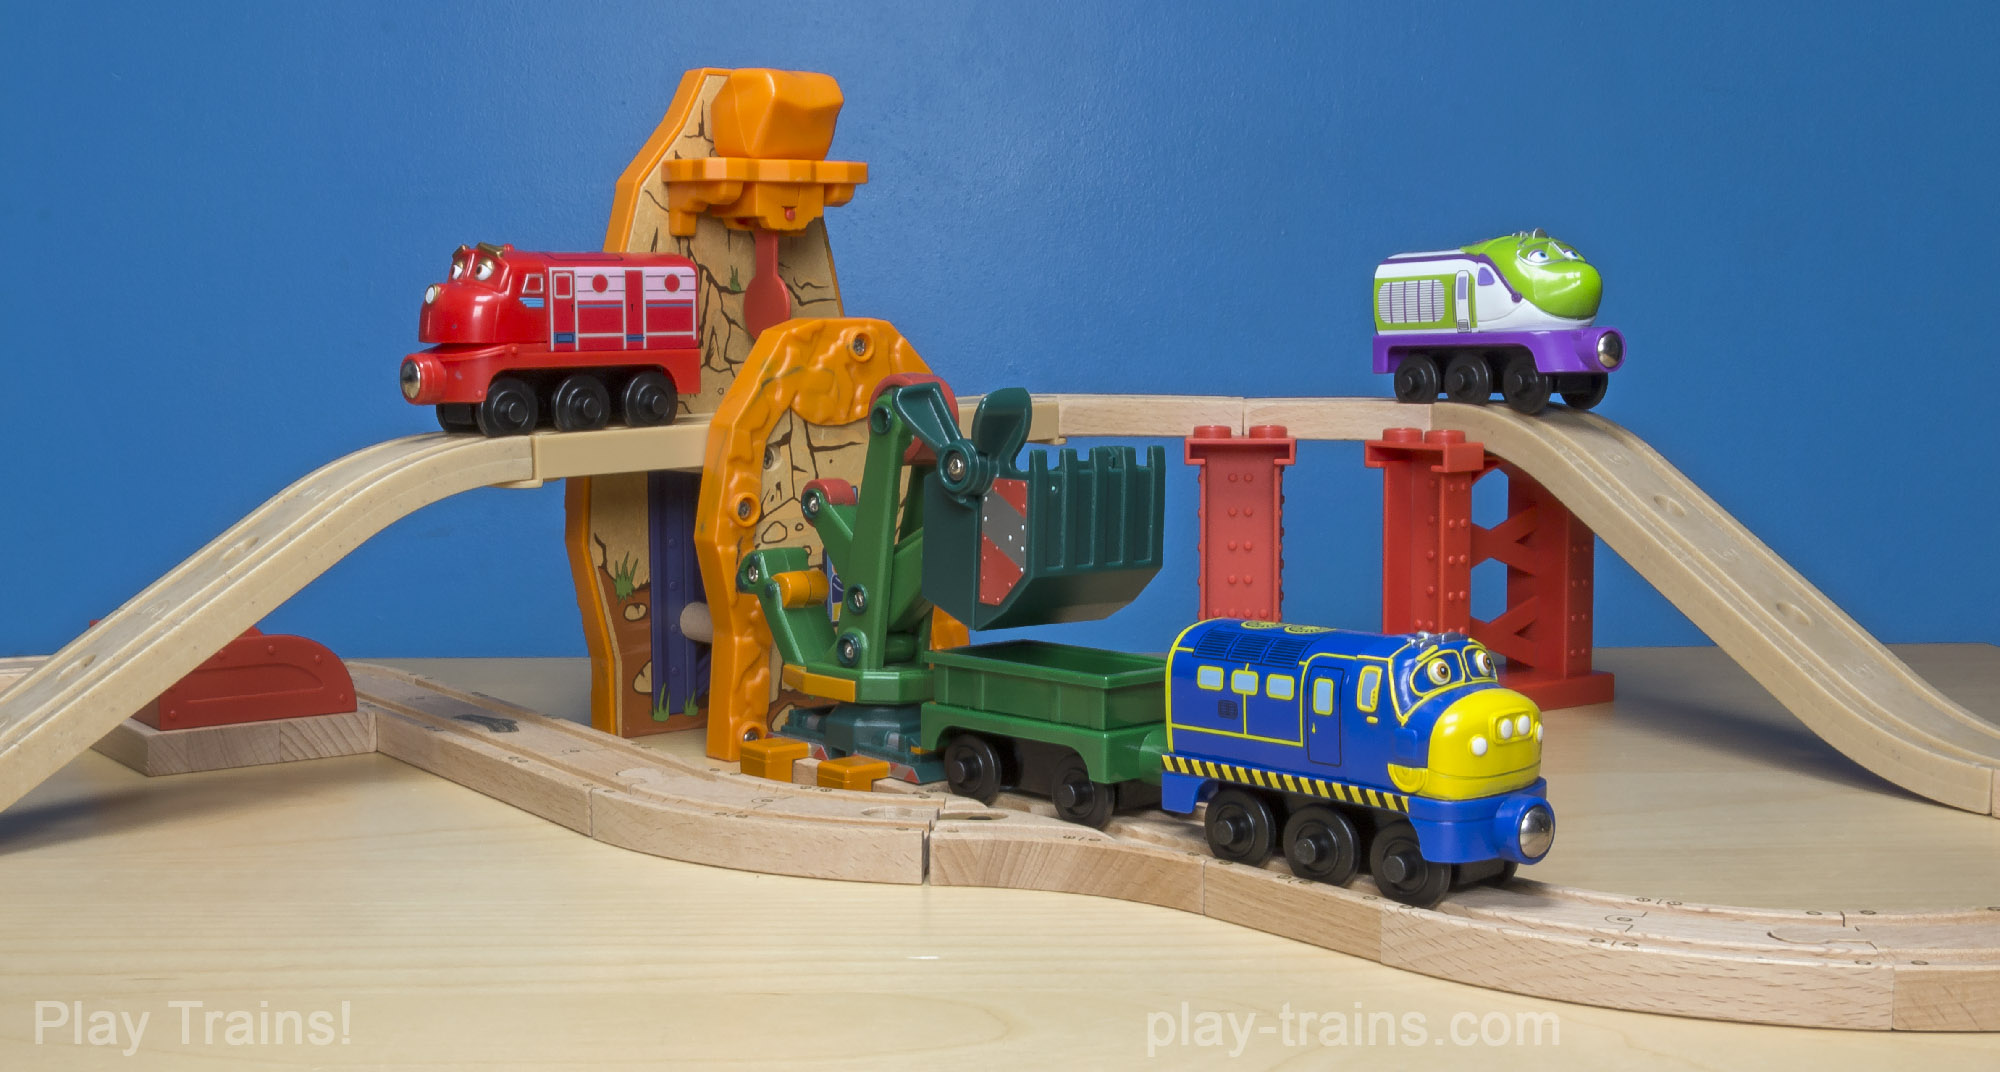 Chuggington Wooden Railway -- The Play Trains! Guide to Wooden Train Sets: expert advice on the best wooden train set to buy for your little engineer.